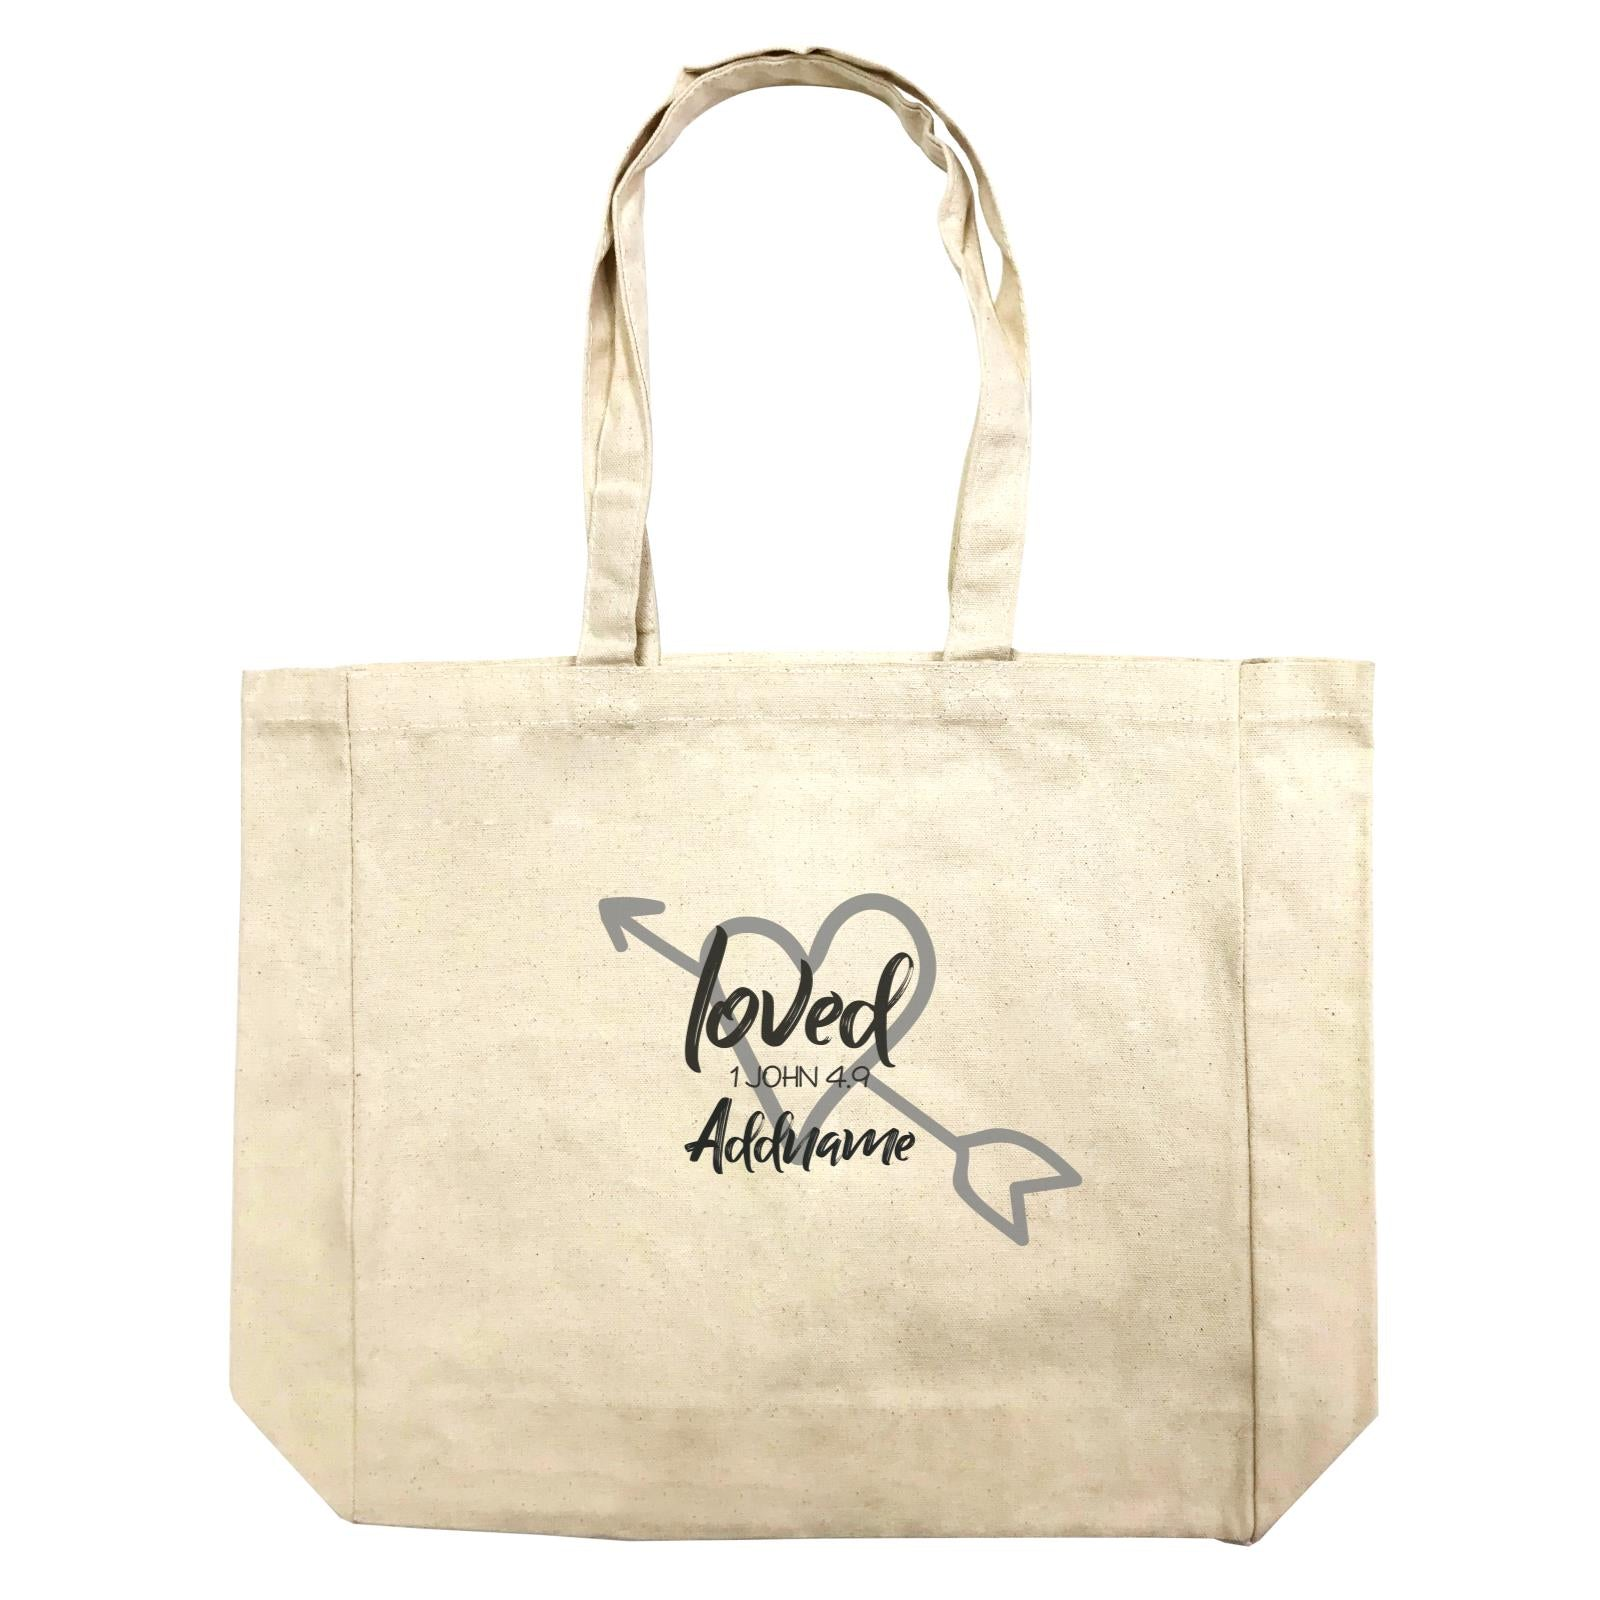 Loved Family Loved With Heart And Arrow 1 John 4.9 Addname Shopping Bag